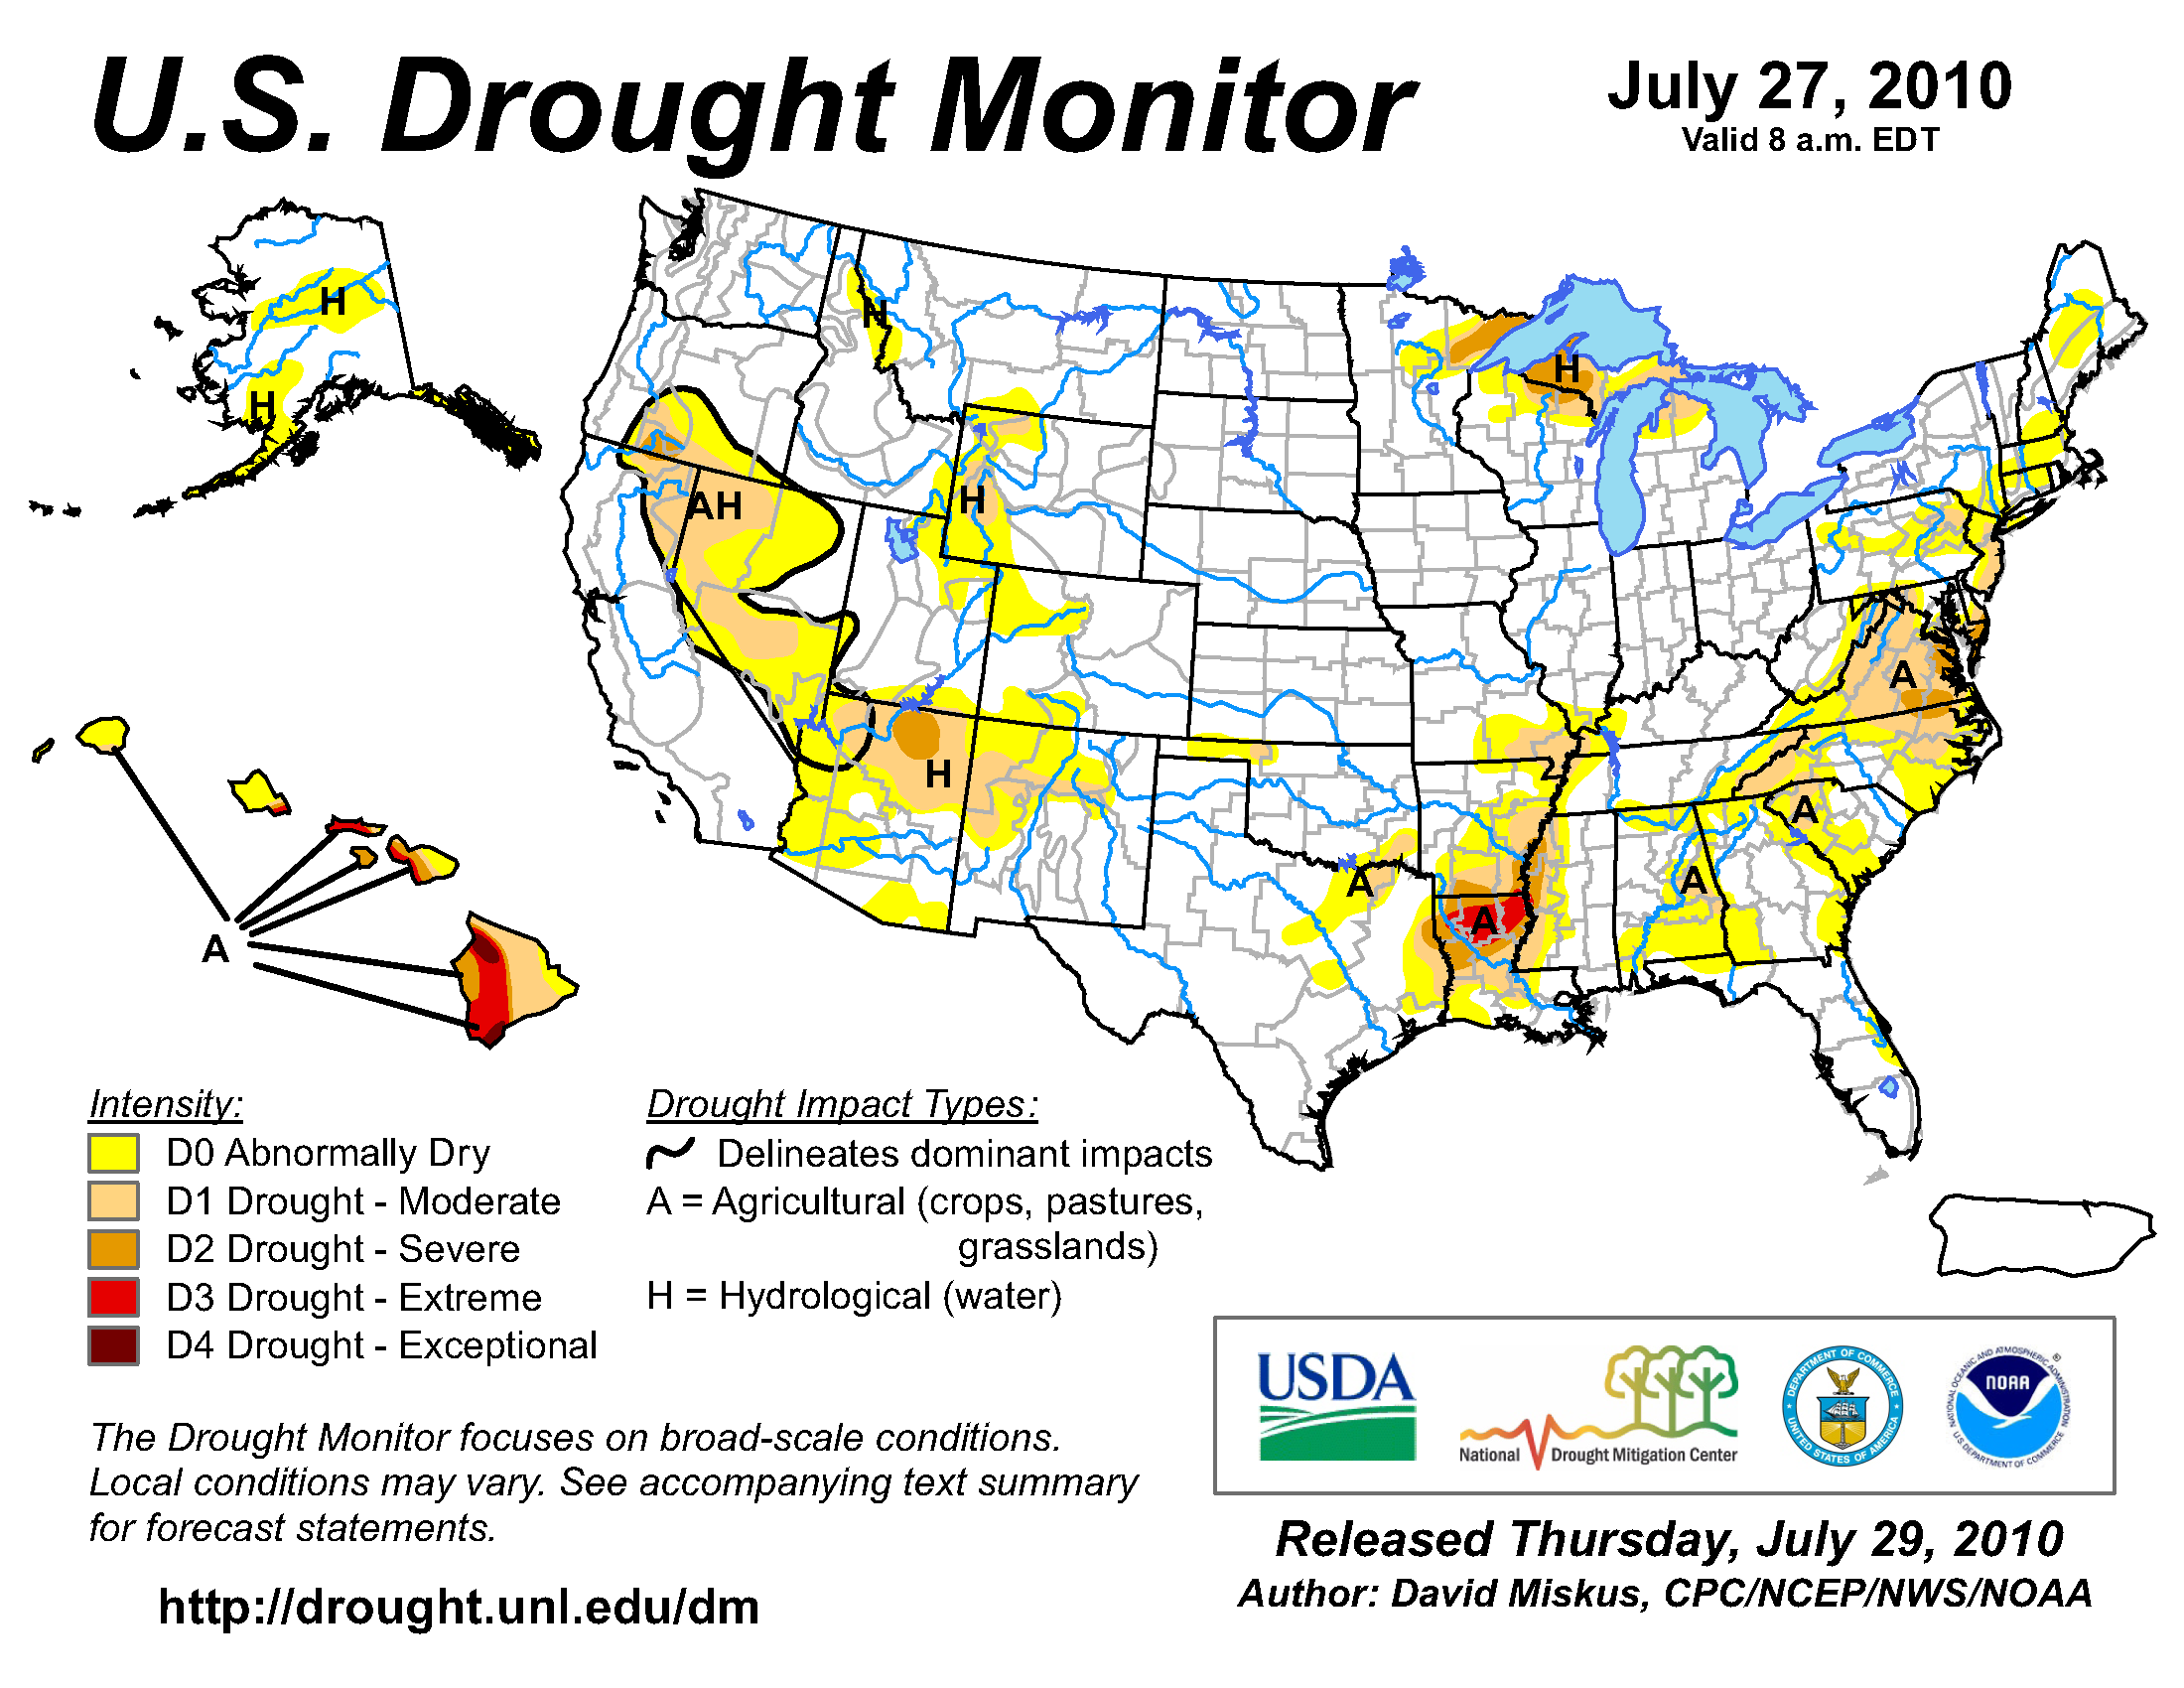 U.S. Drought Monitor map from 27 july 2010